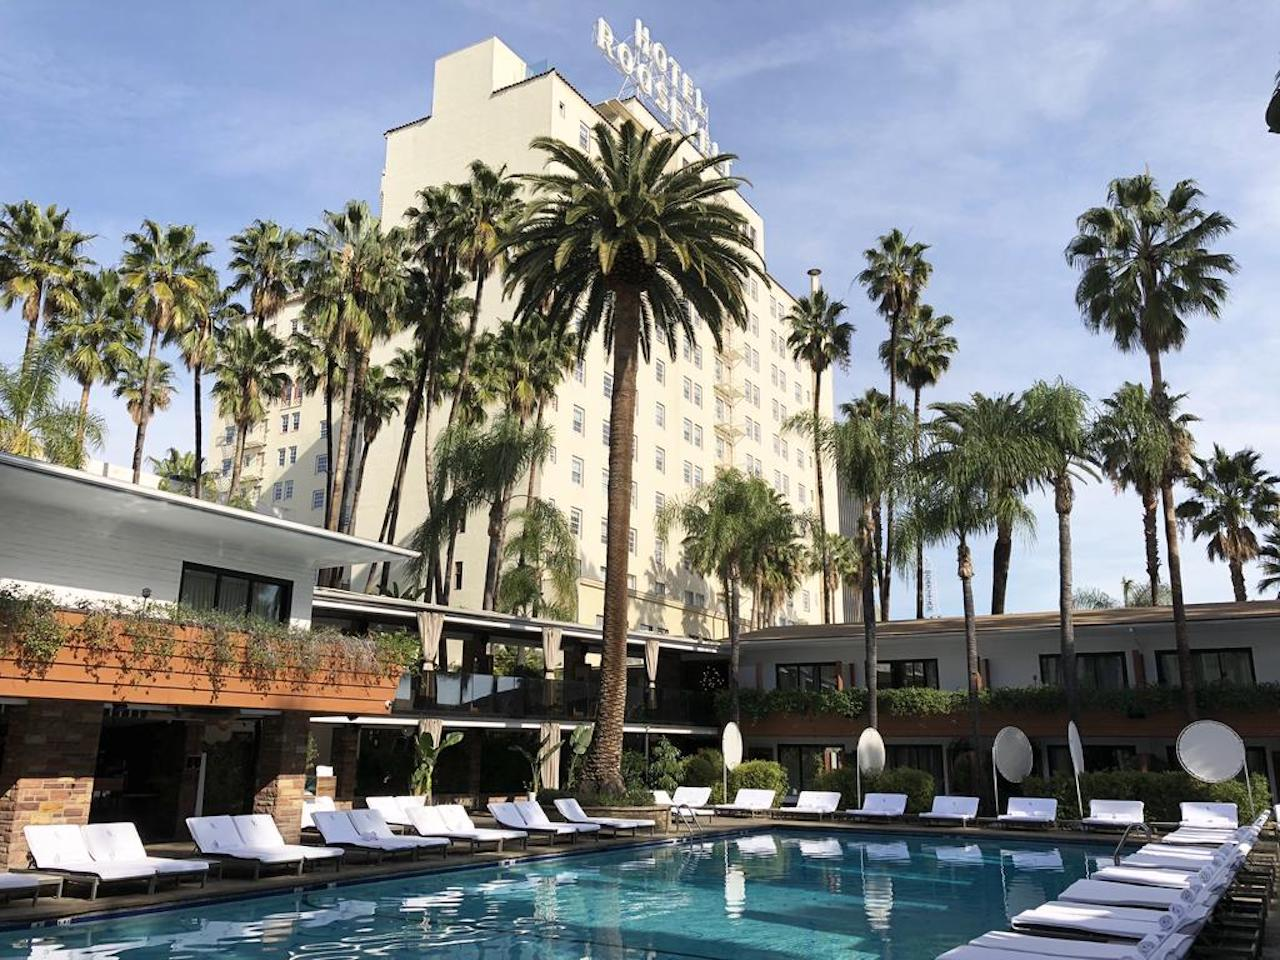 Hotel Roosevelt, Los Angeles, California. Photo courtesy of Hotel Roosevelt.